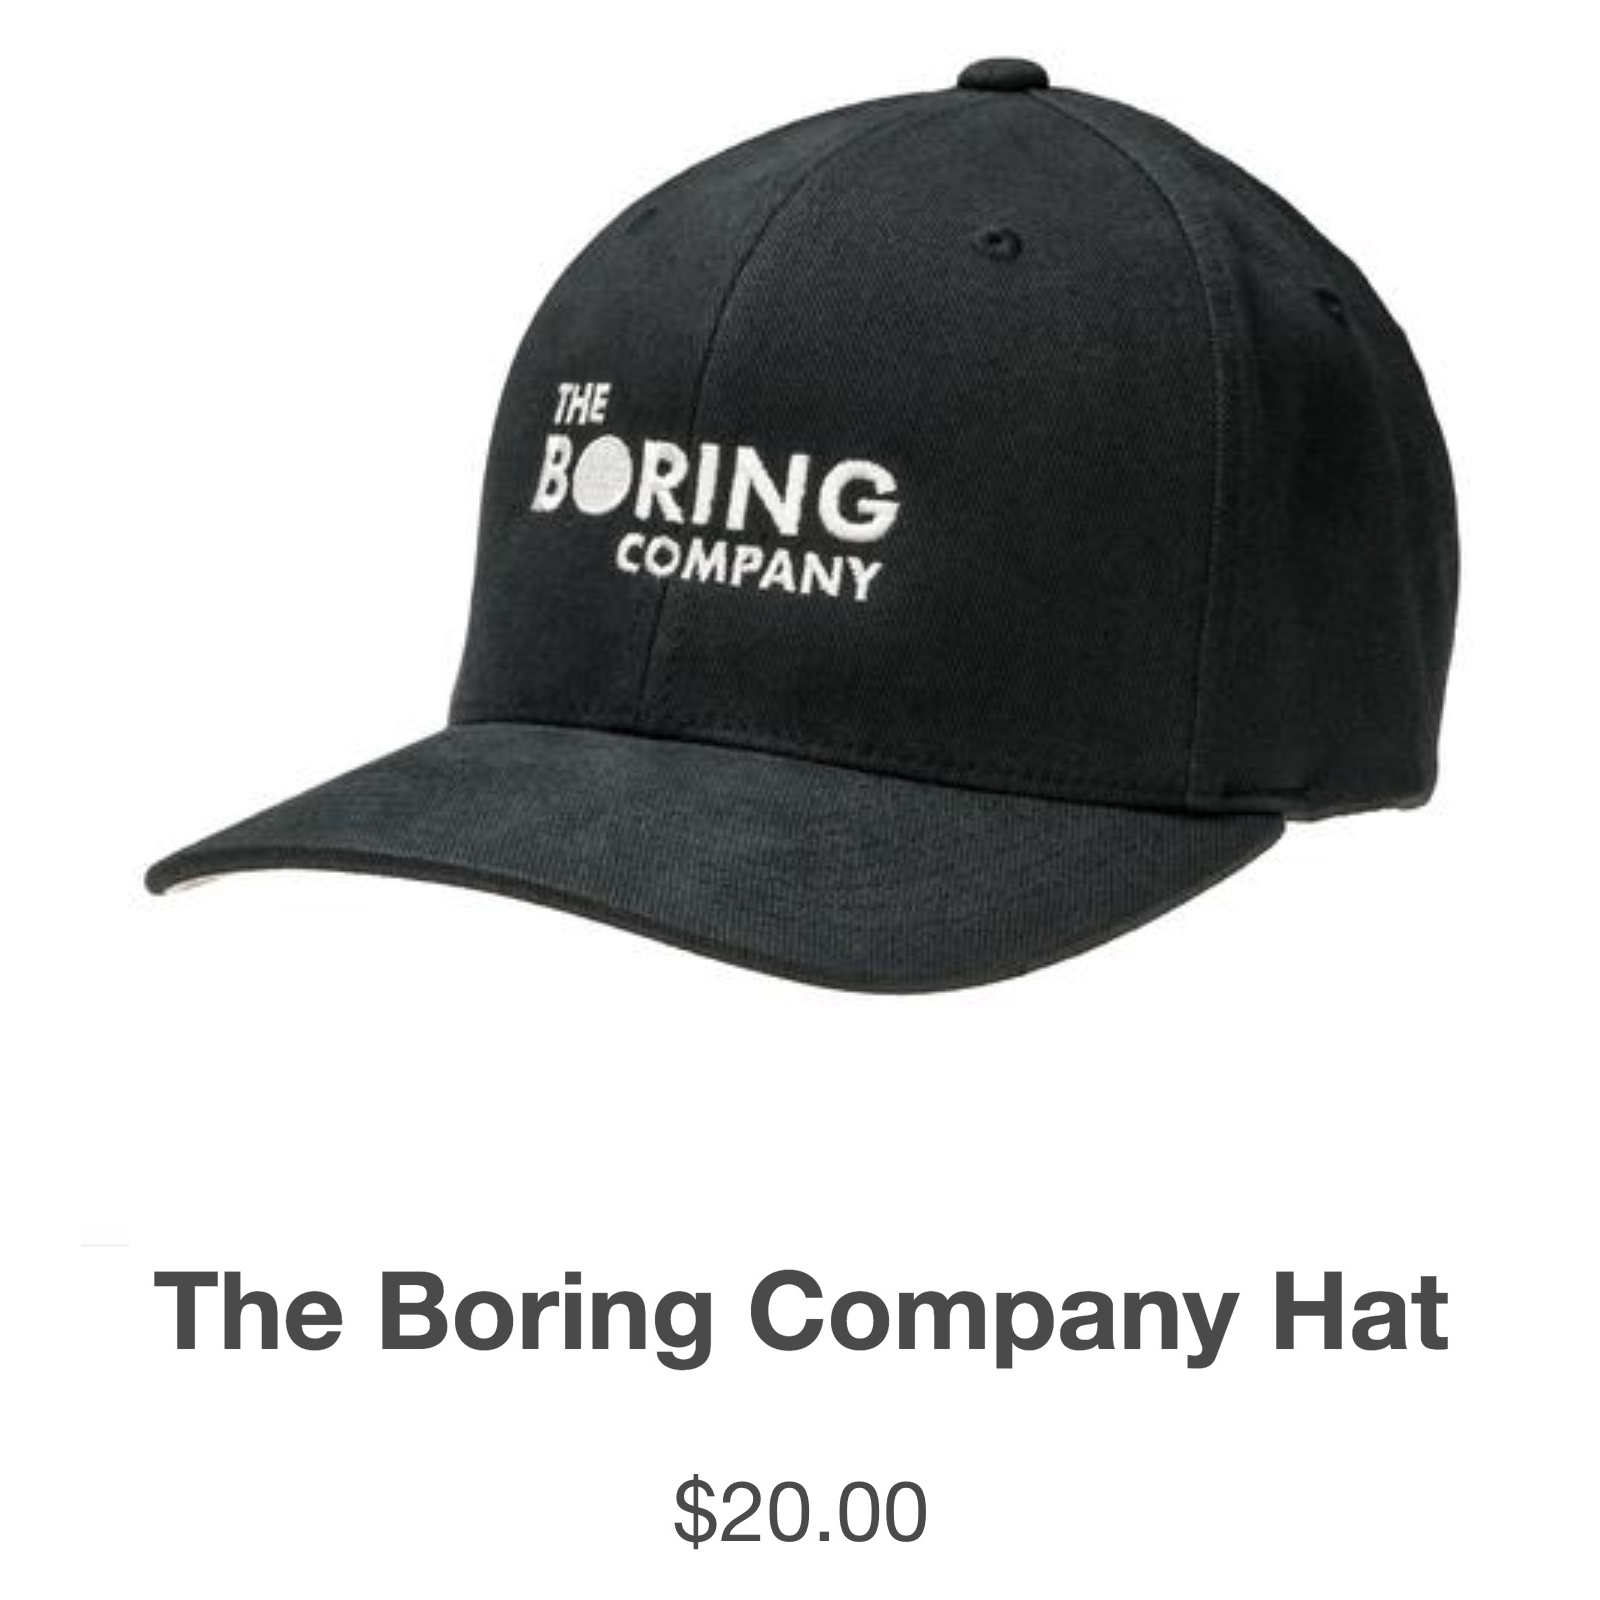 Part II: Twitter Hype - Run a dual marketing/recruiting campaign and break ground1. Buy a boring machine2. Cross-hire employees from other ventures3. Learn to sell hats and flamethrowers to fundraise millions of dollars